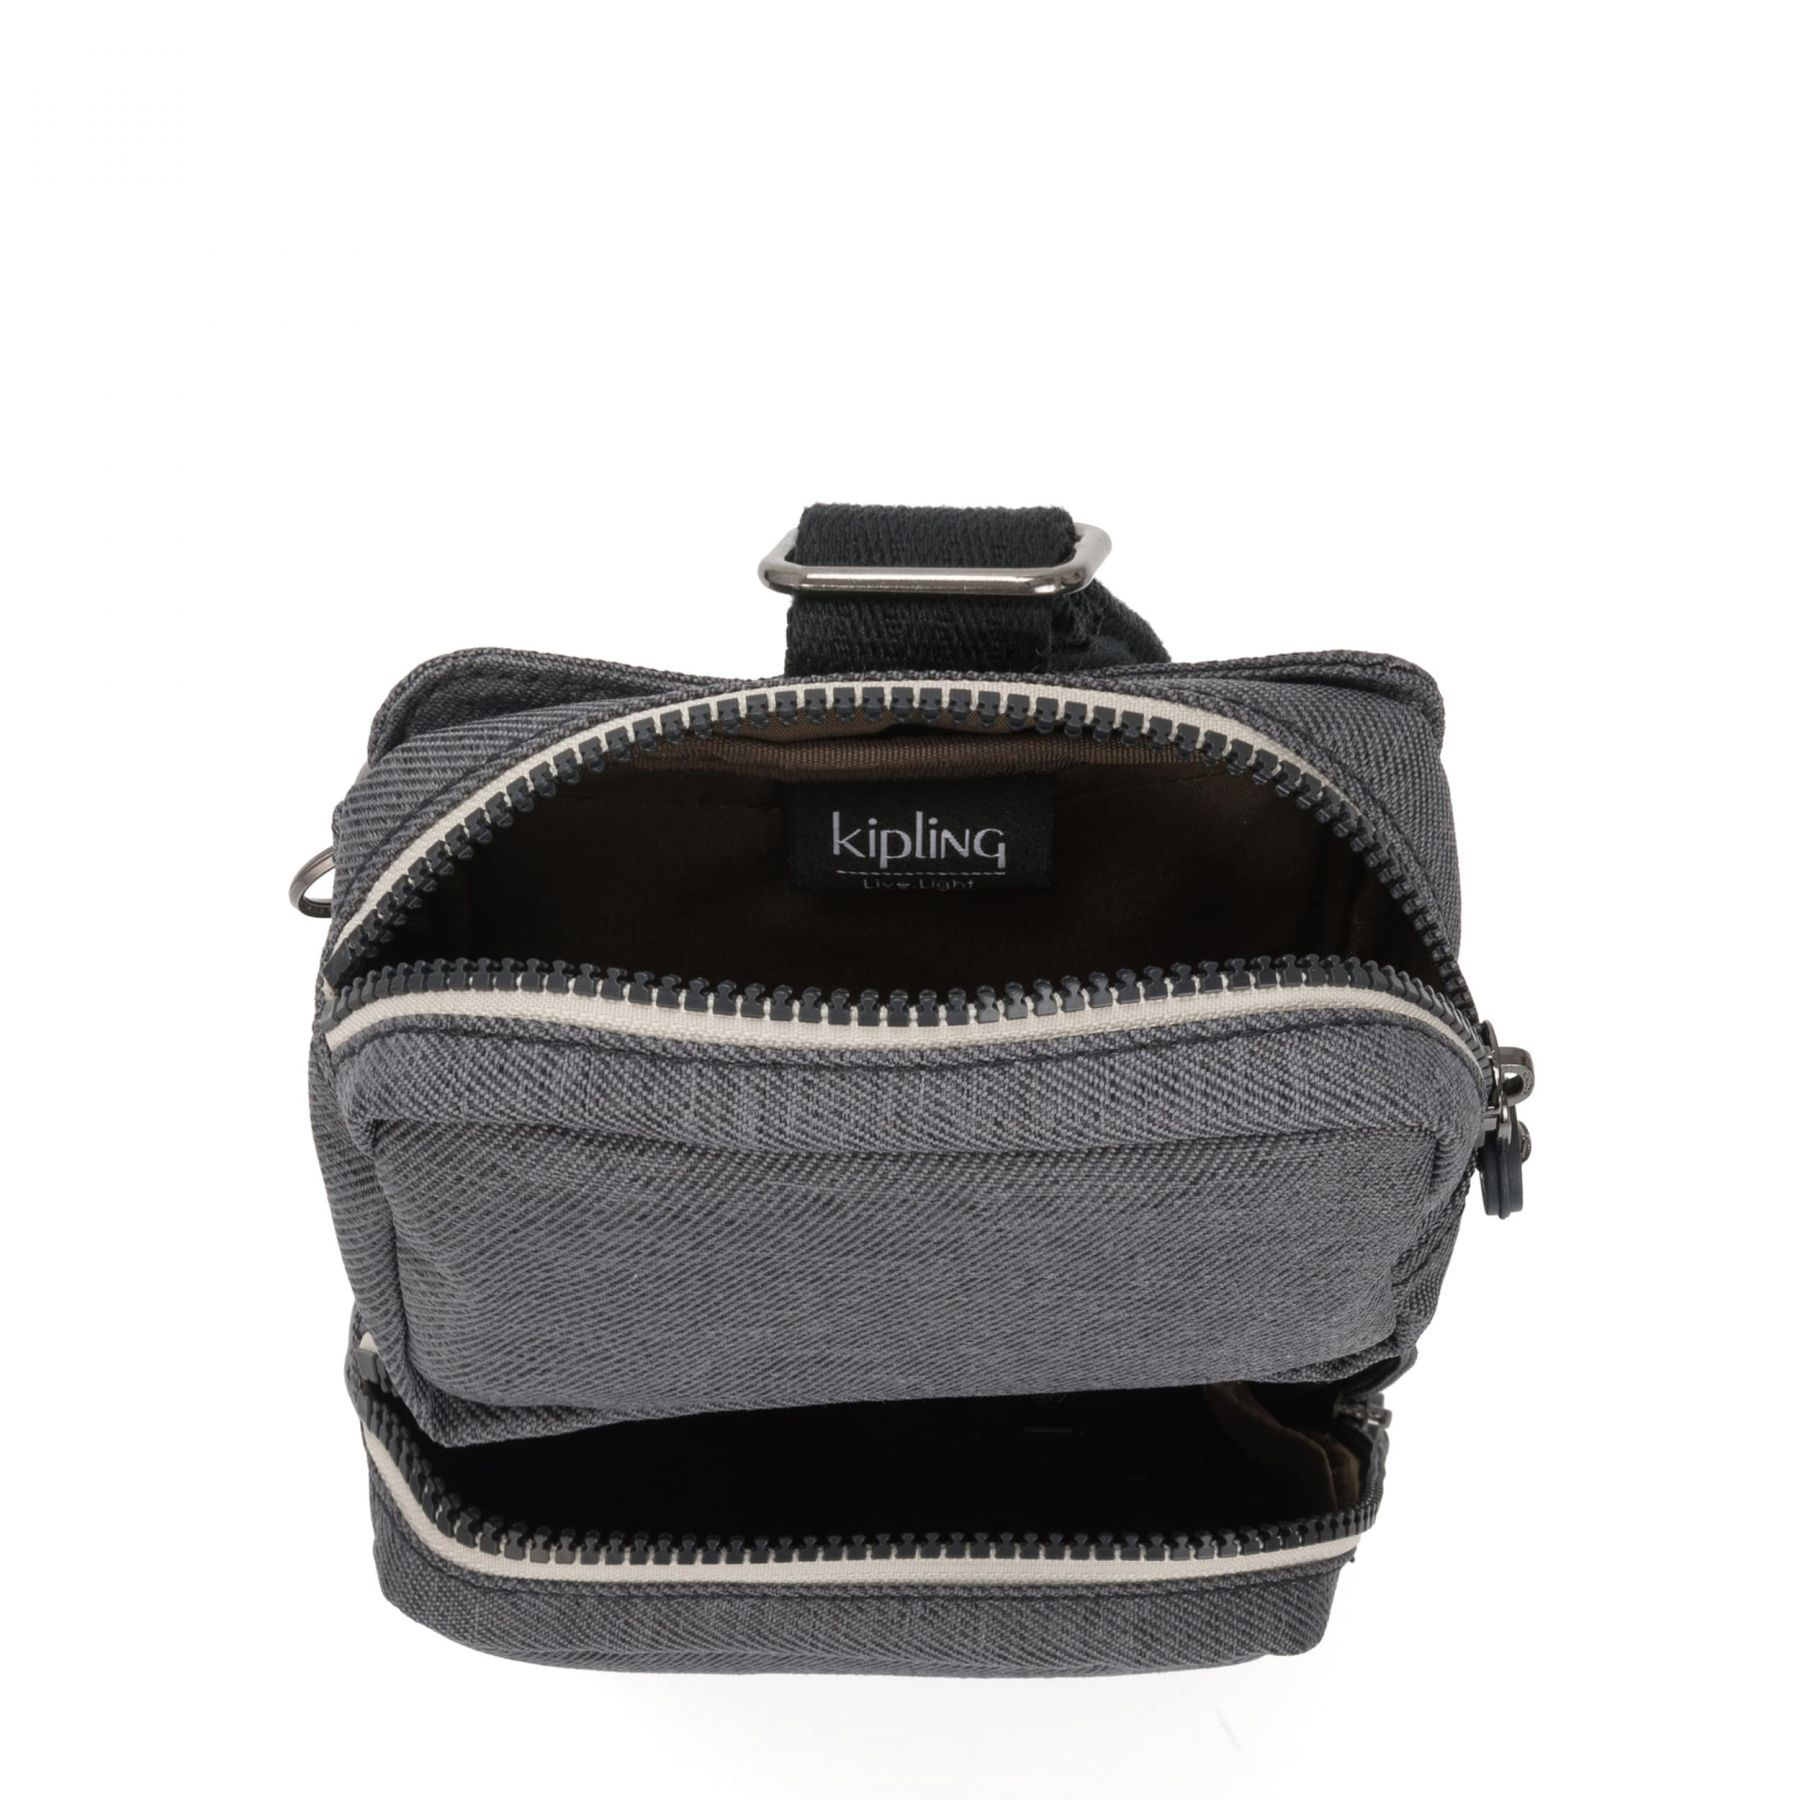 OVANDO Latest Shoulder Bags by Kipling - Inside view